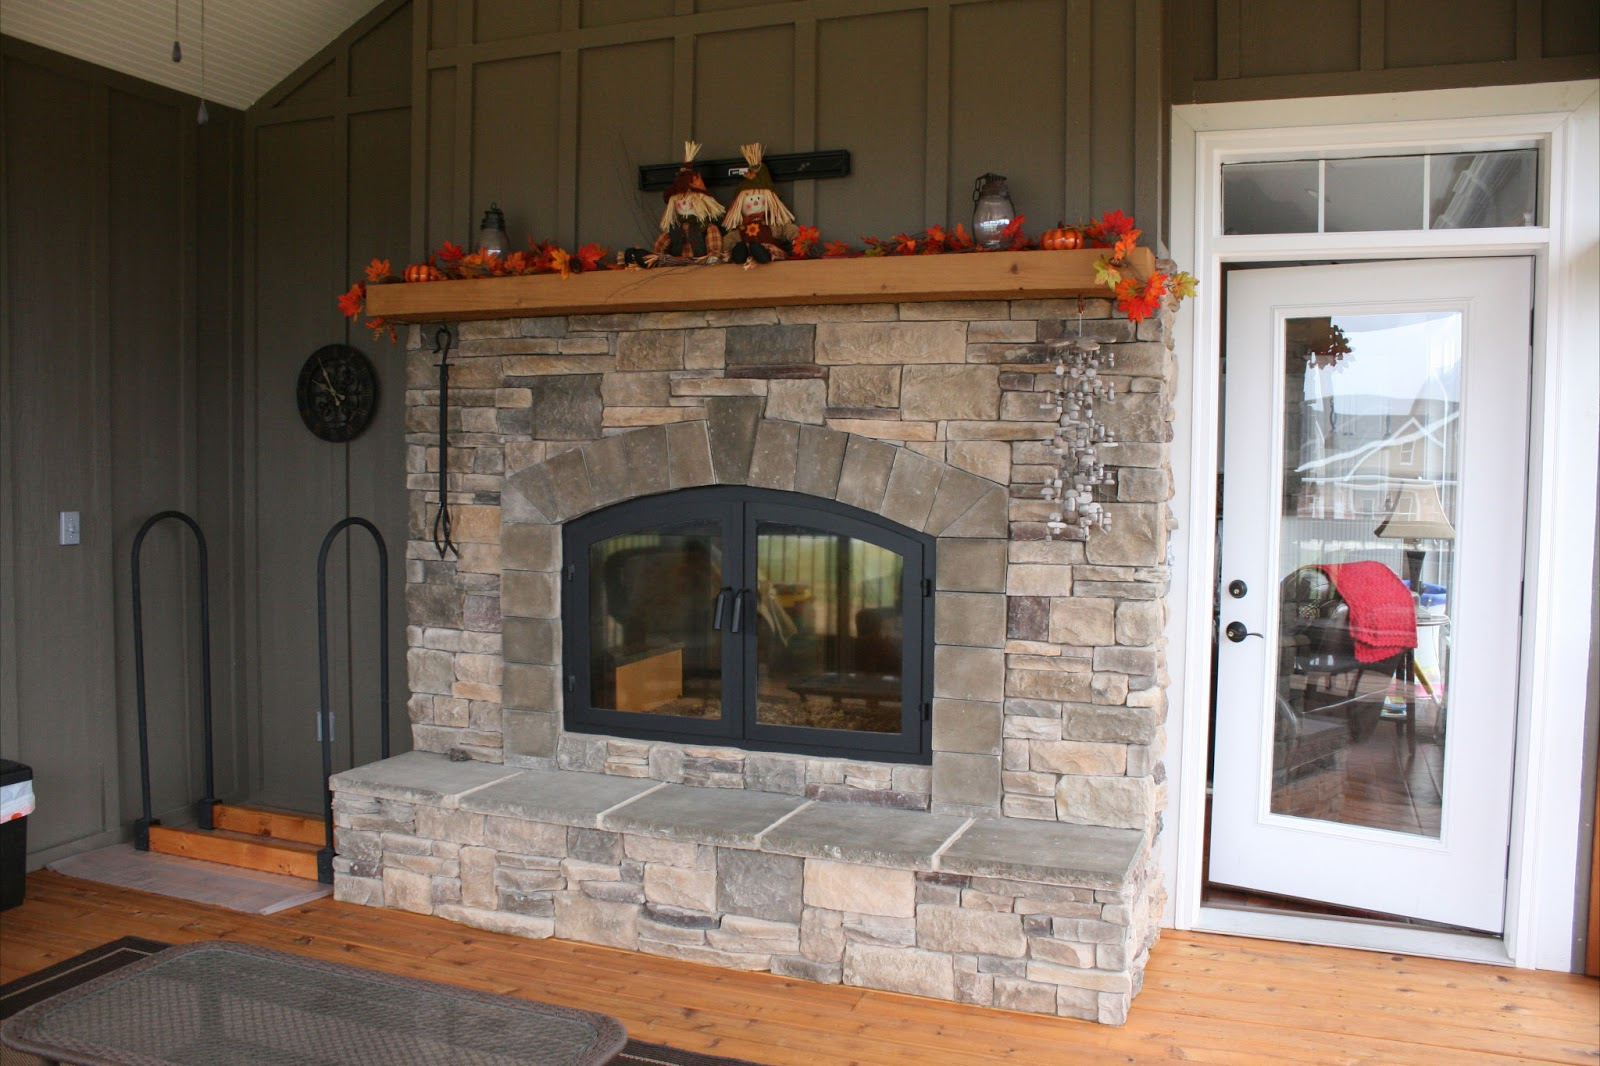 Acucraft Fireplaces: October 2013